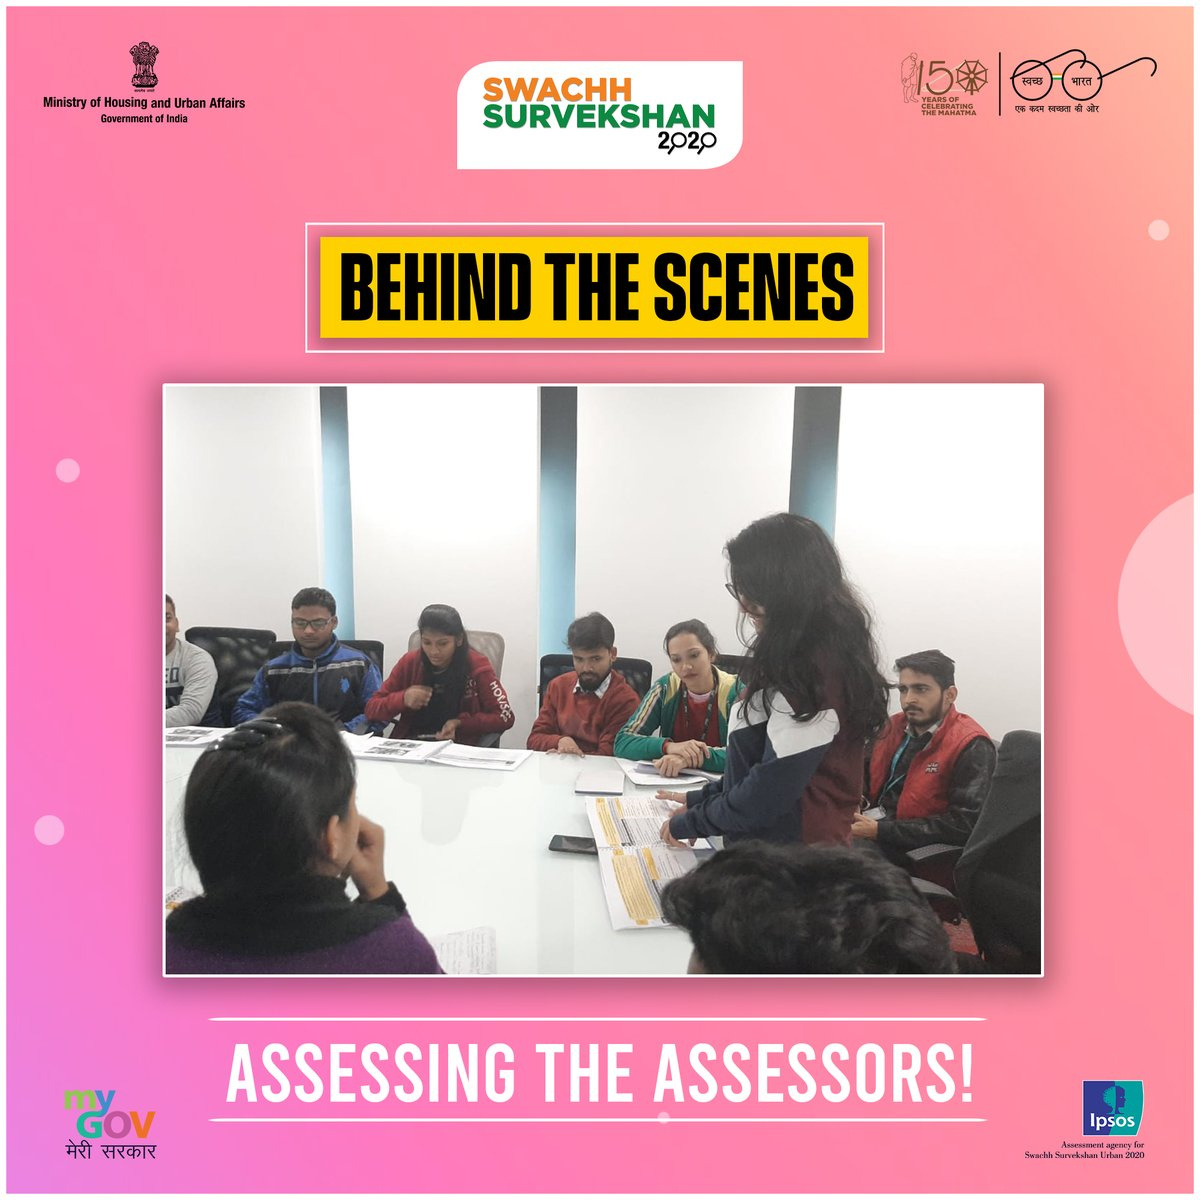 Take a peak #BehindTheScenes of #SwachhSurvekshan2020.  We made sure that our assessors were all set to assess your cities!  #SwachhBharat #BTS https://t.co/eEI3BnafgG